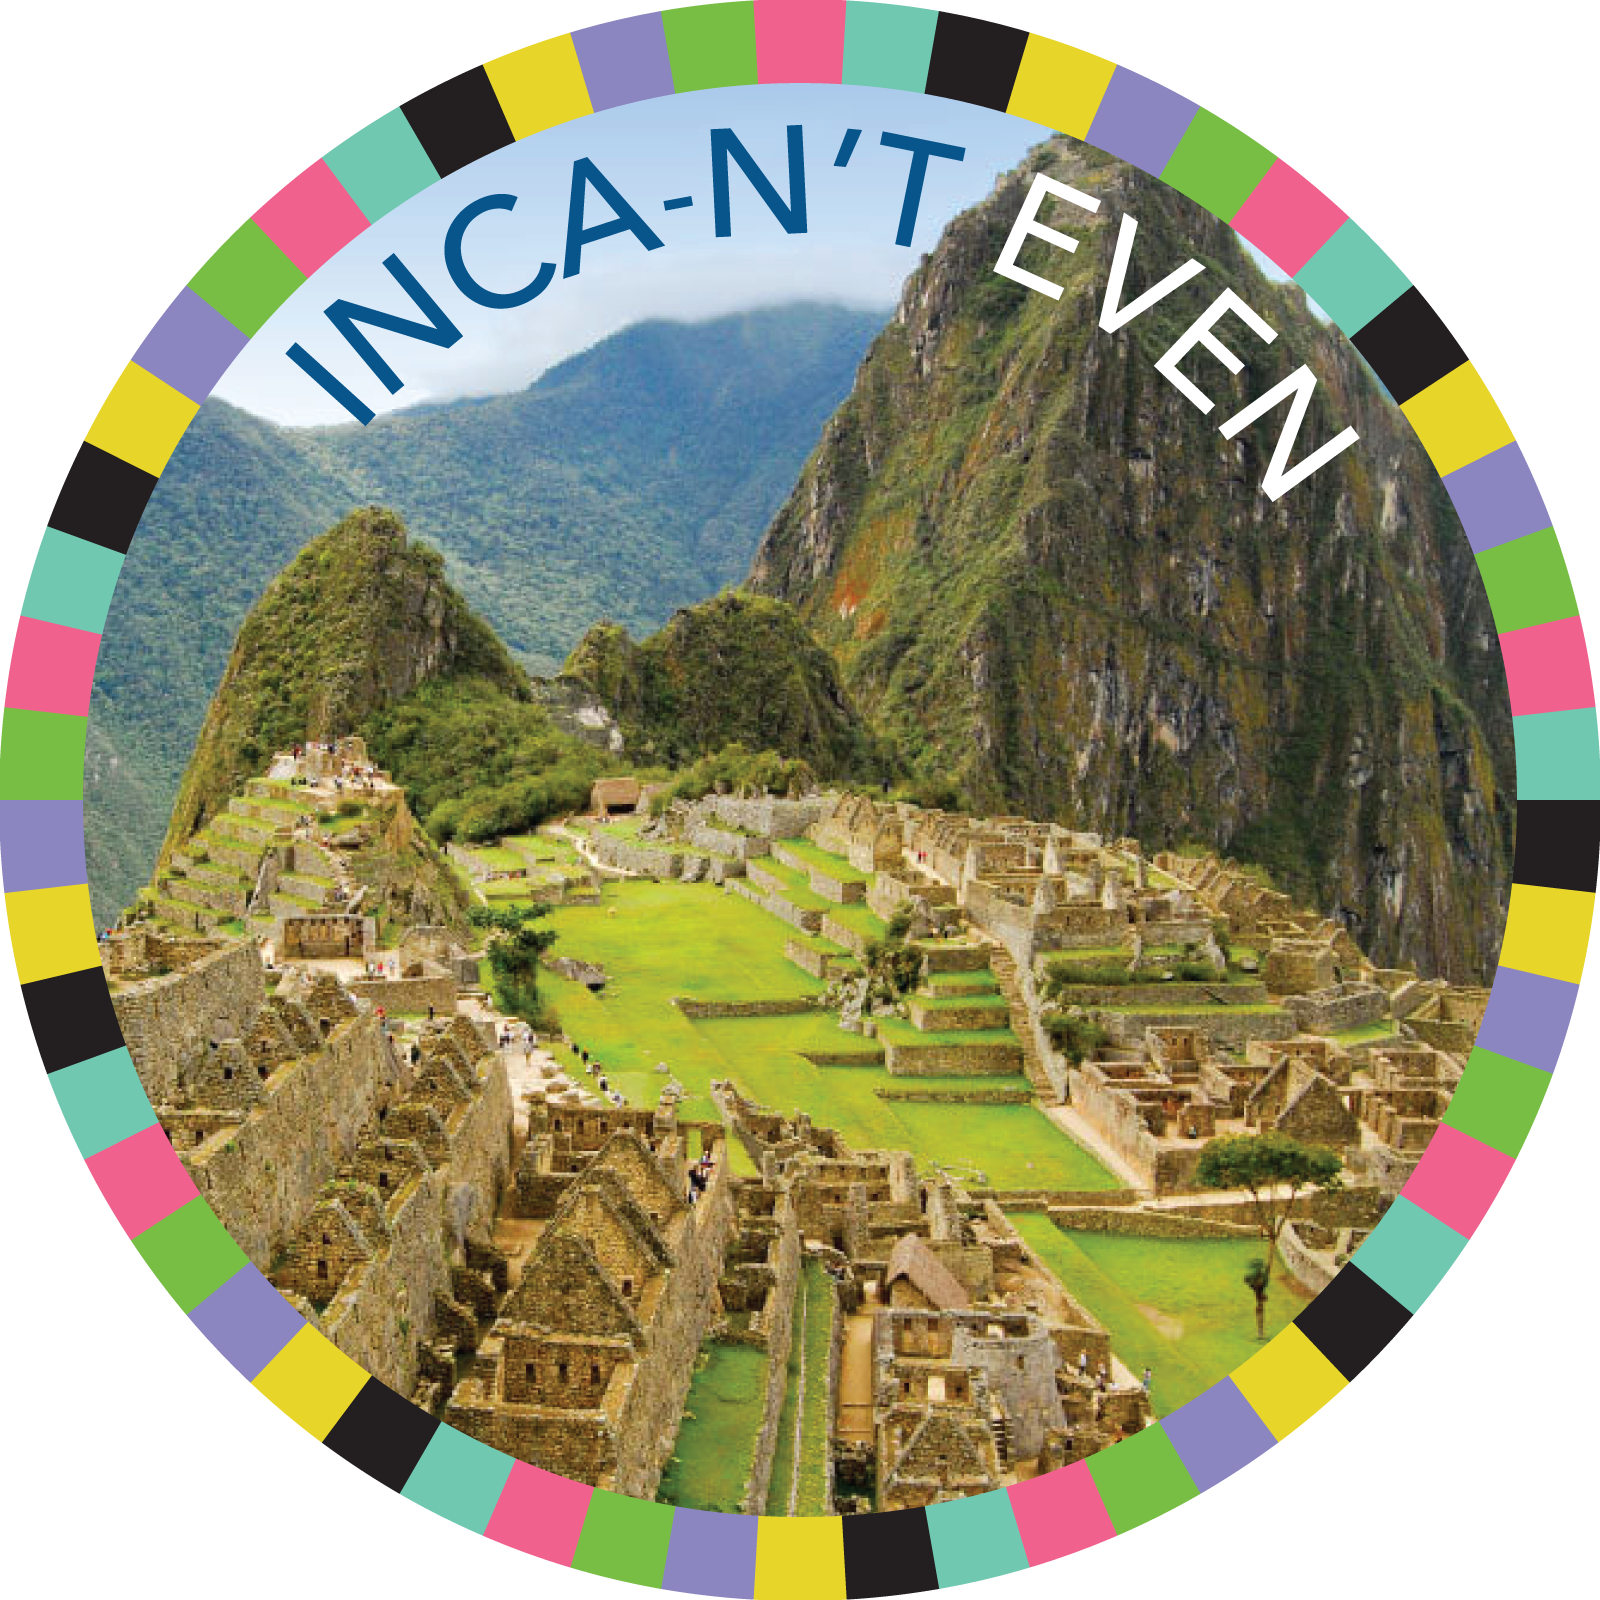 Inca-n't Even badge image